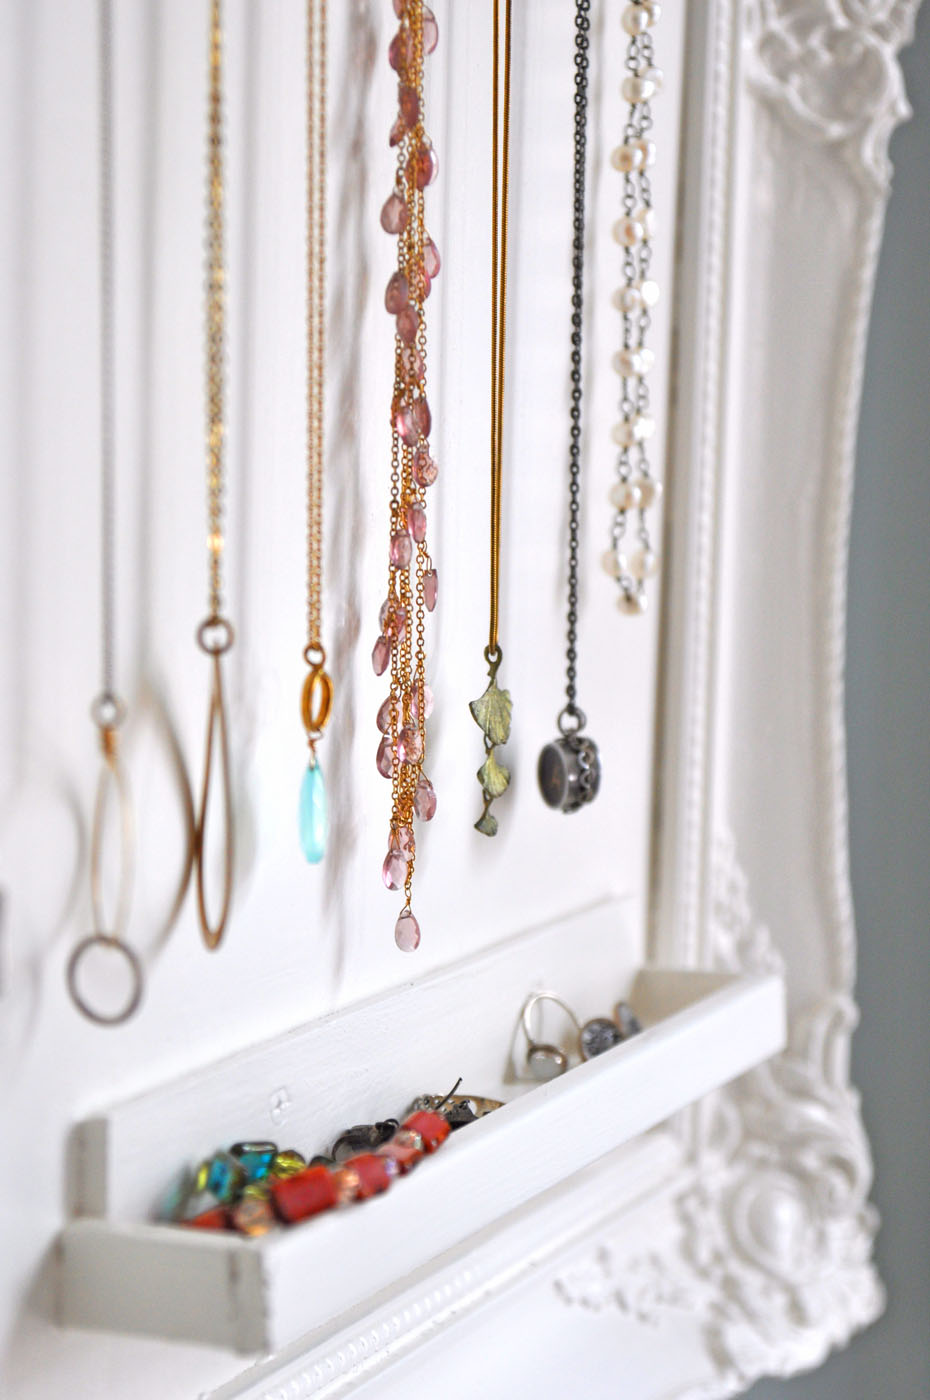 Do it yourself jewelry storage solutioingenieria